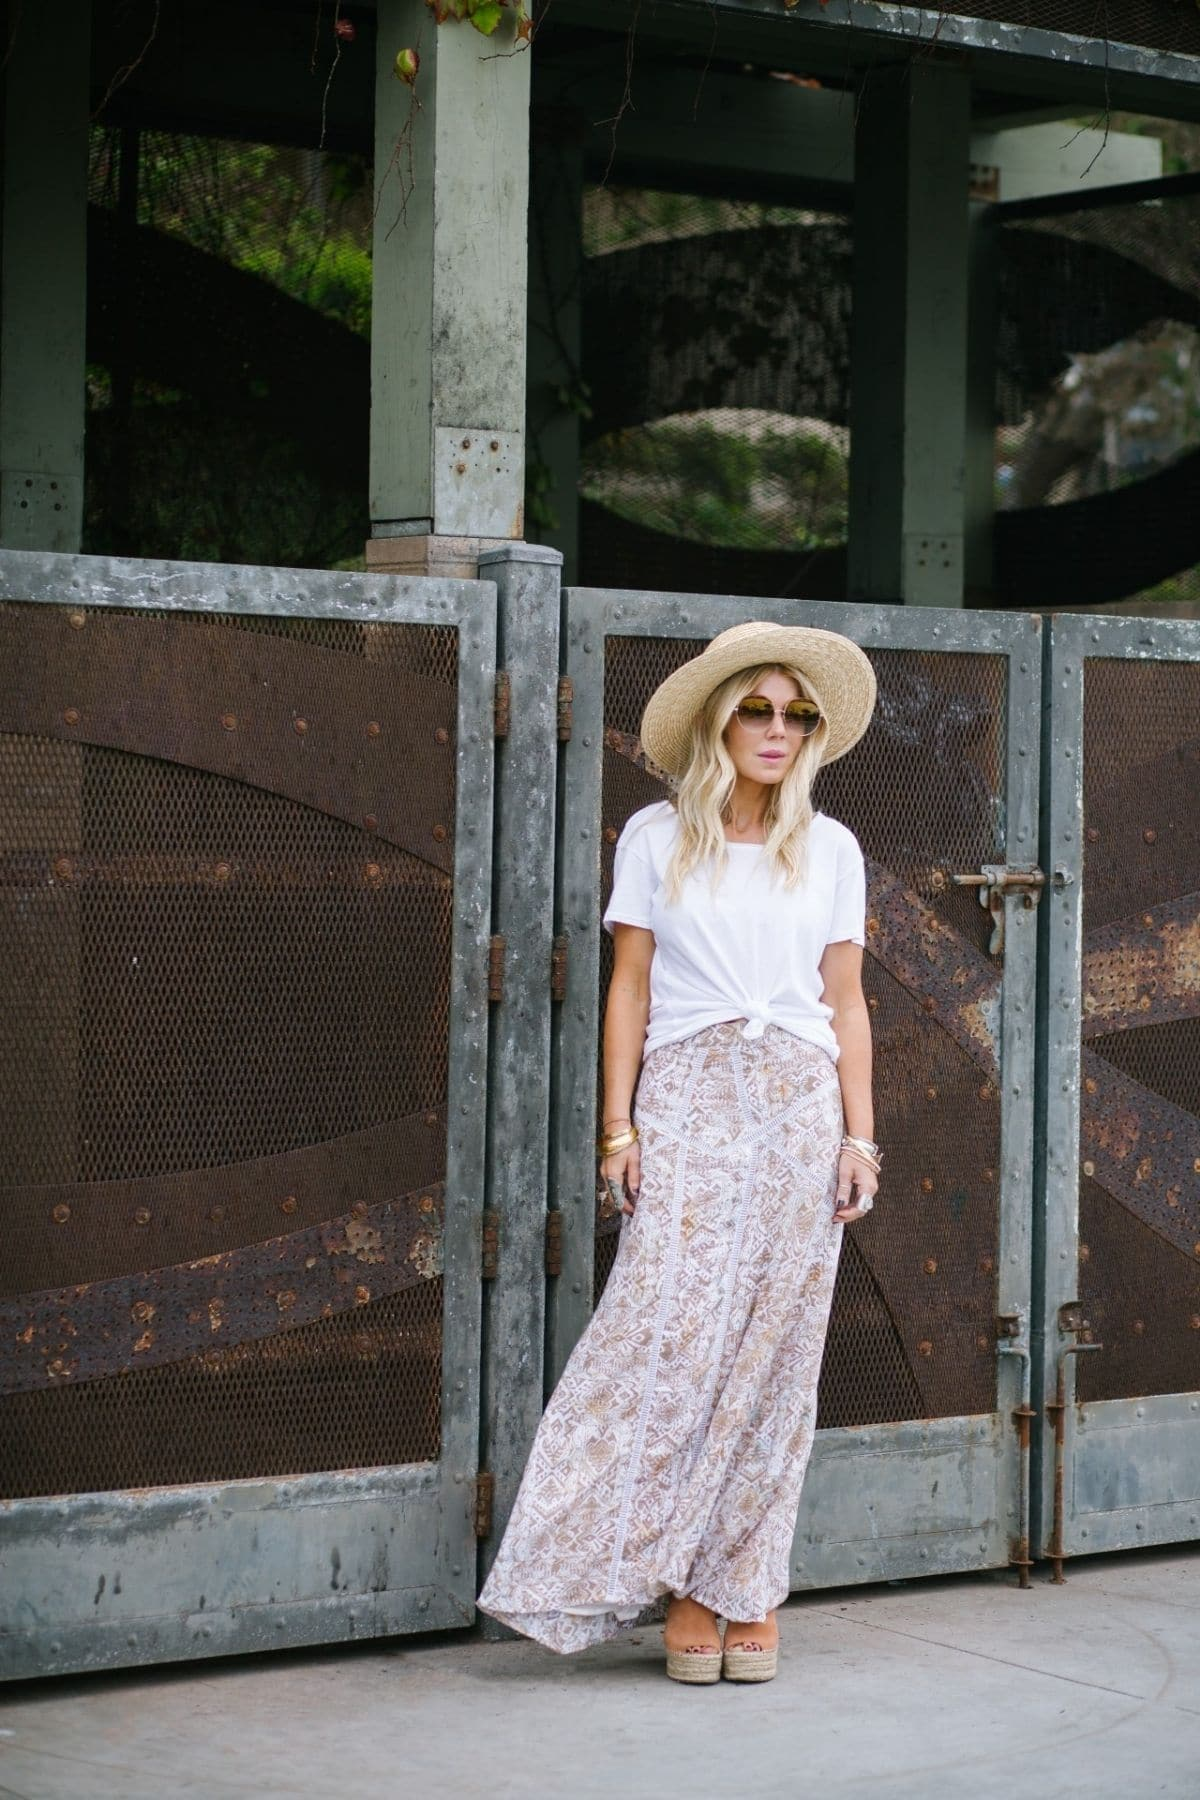 maxi skirt outfit with knotted white top, sandals, and straw hat